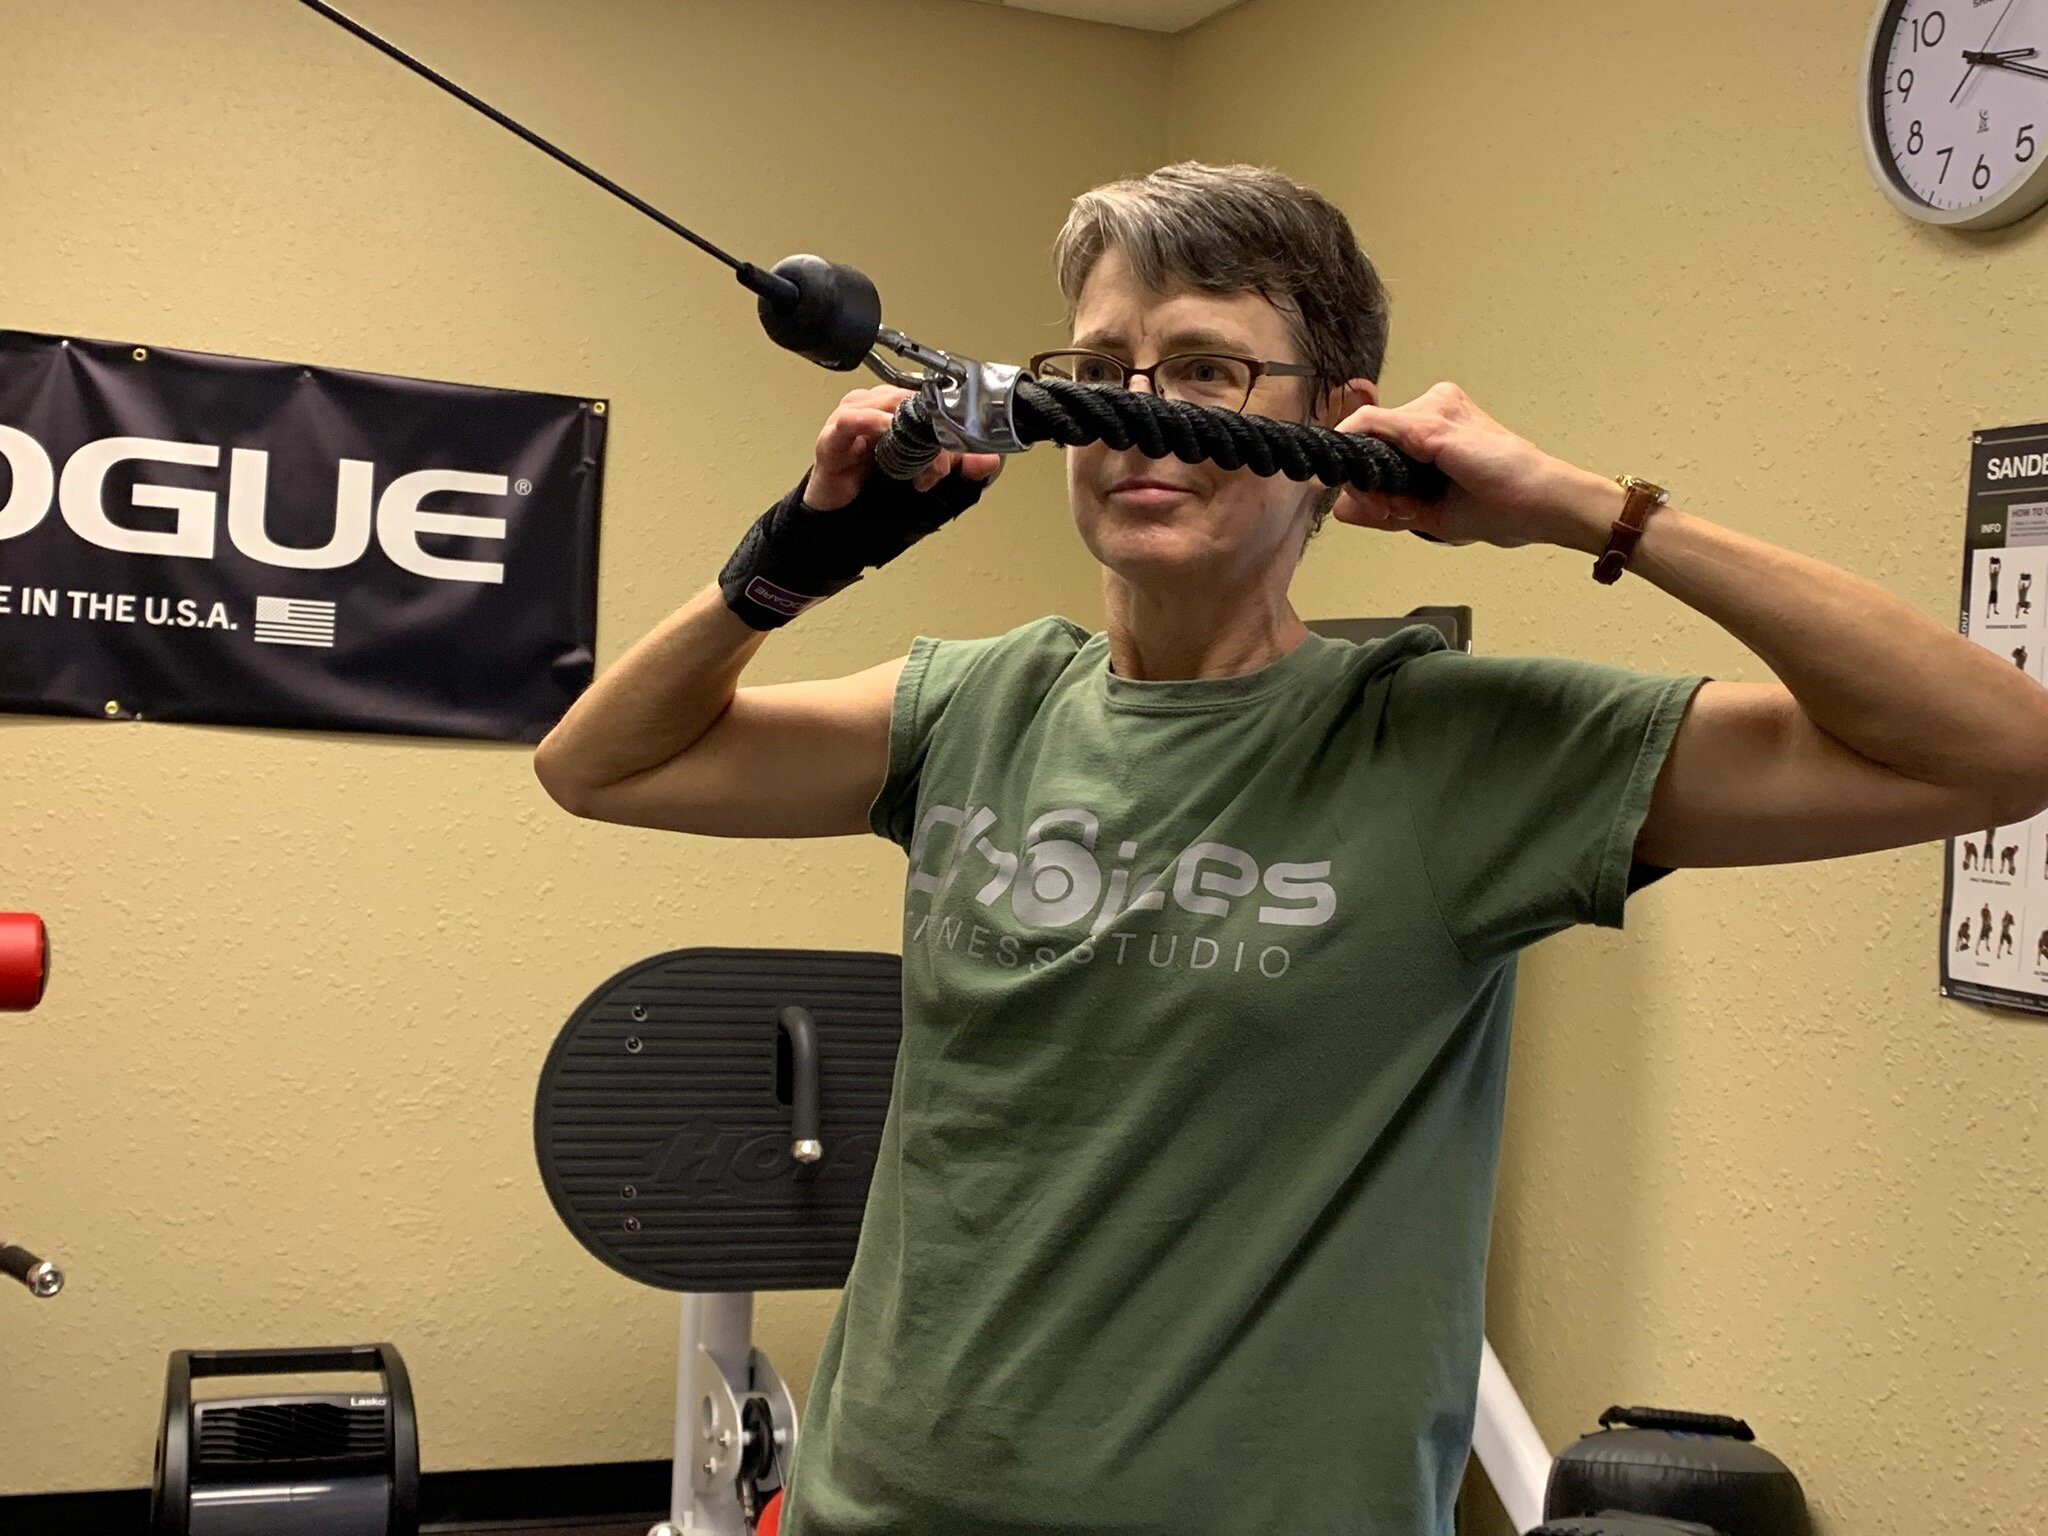 Kathy performs a Face Pull back exercise  during her 100th visit to Choices Fitness Studio. Choices uses circuit training to give clients a full-body workout that blends weight training, kettlebells, boxing fitness, cardio and Tabata intervals.